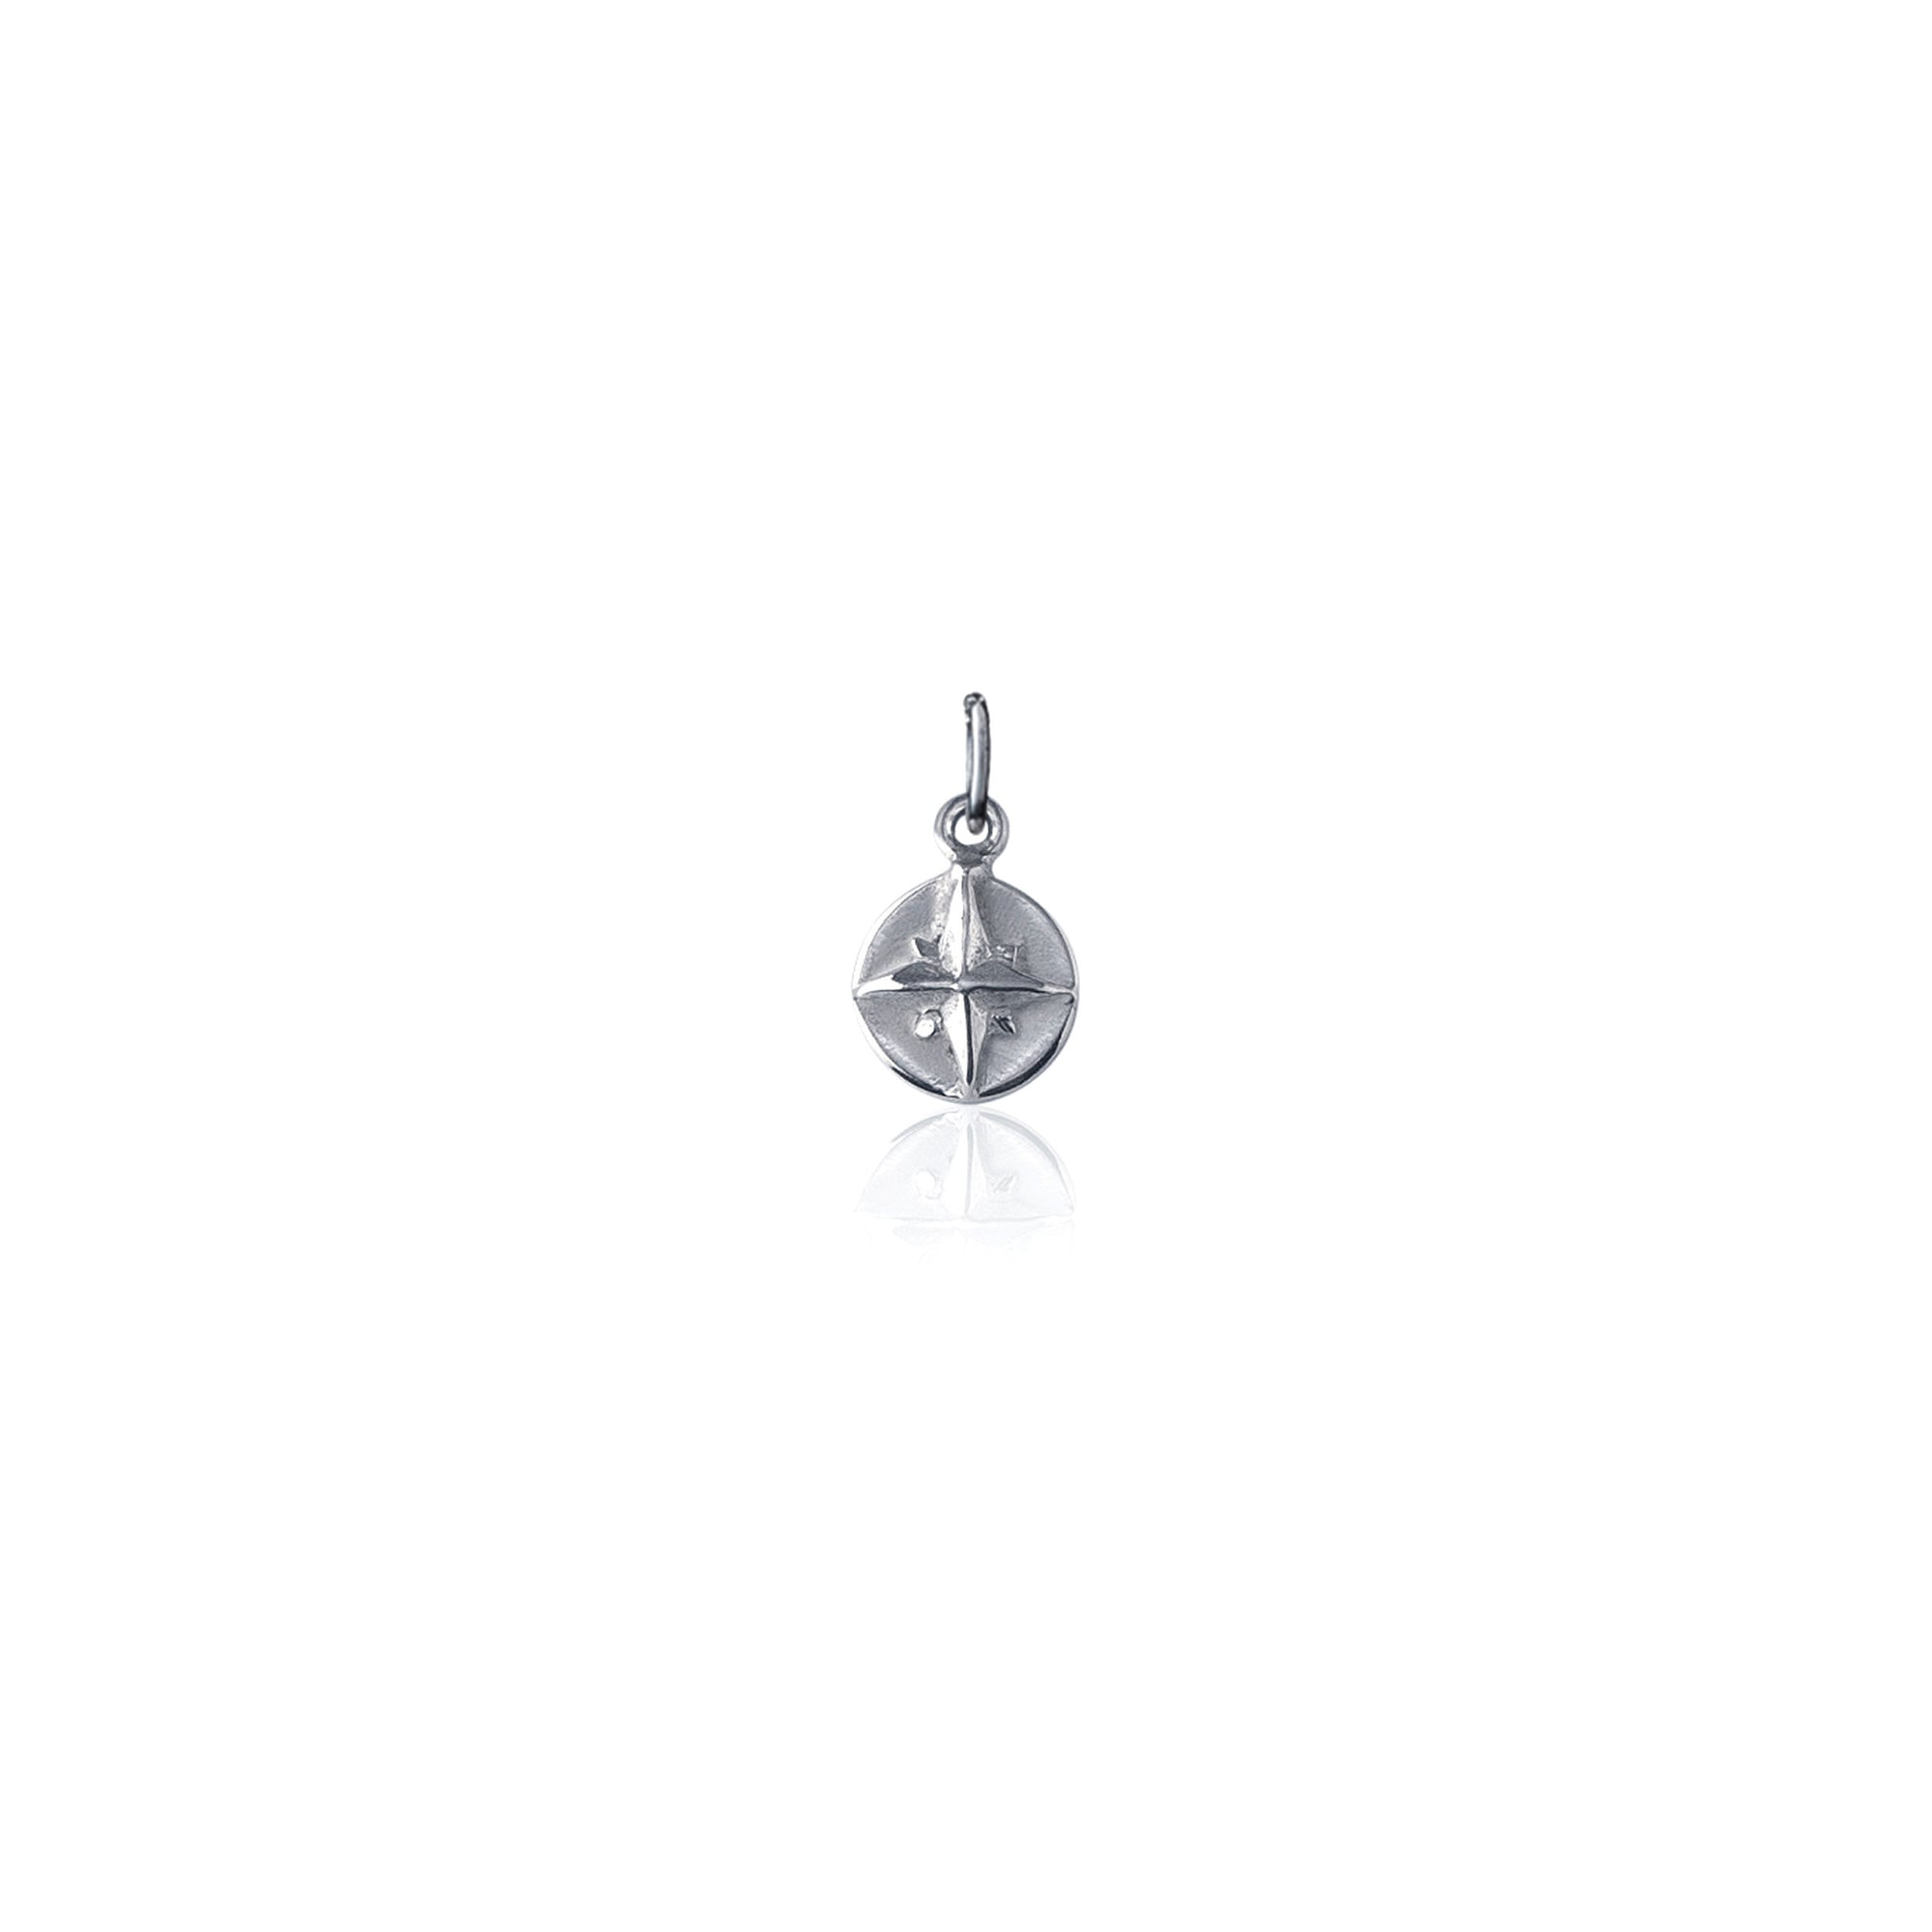 Born to Roam Charm (Silver)